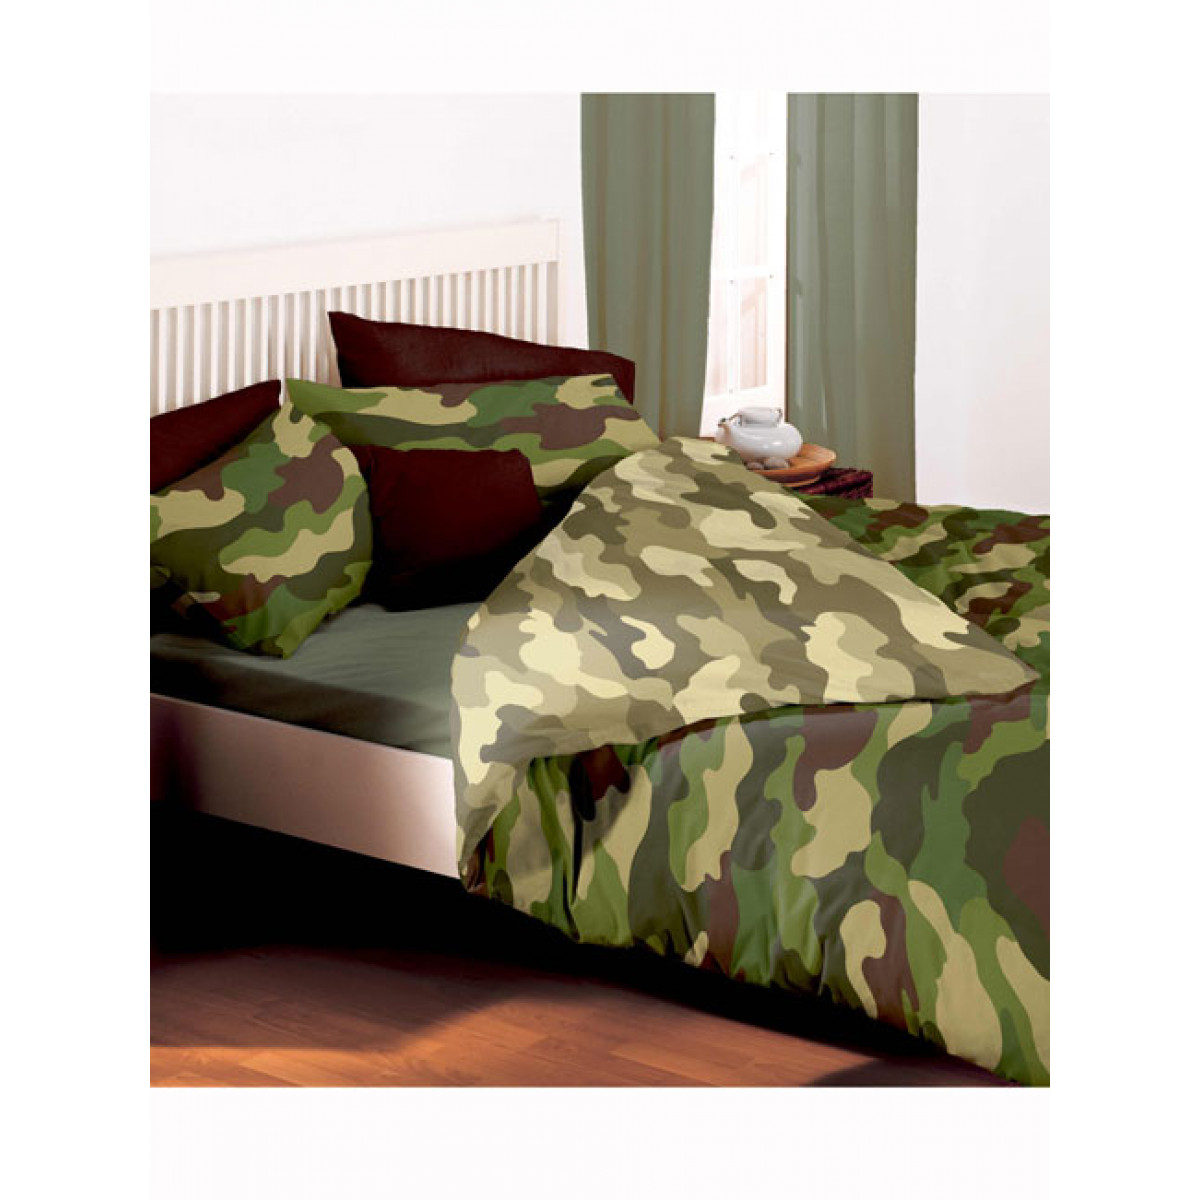 army camo double duvet bedding set price right home. Black Bedroom Furniture Sets. Home Design Ideas